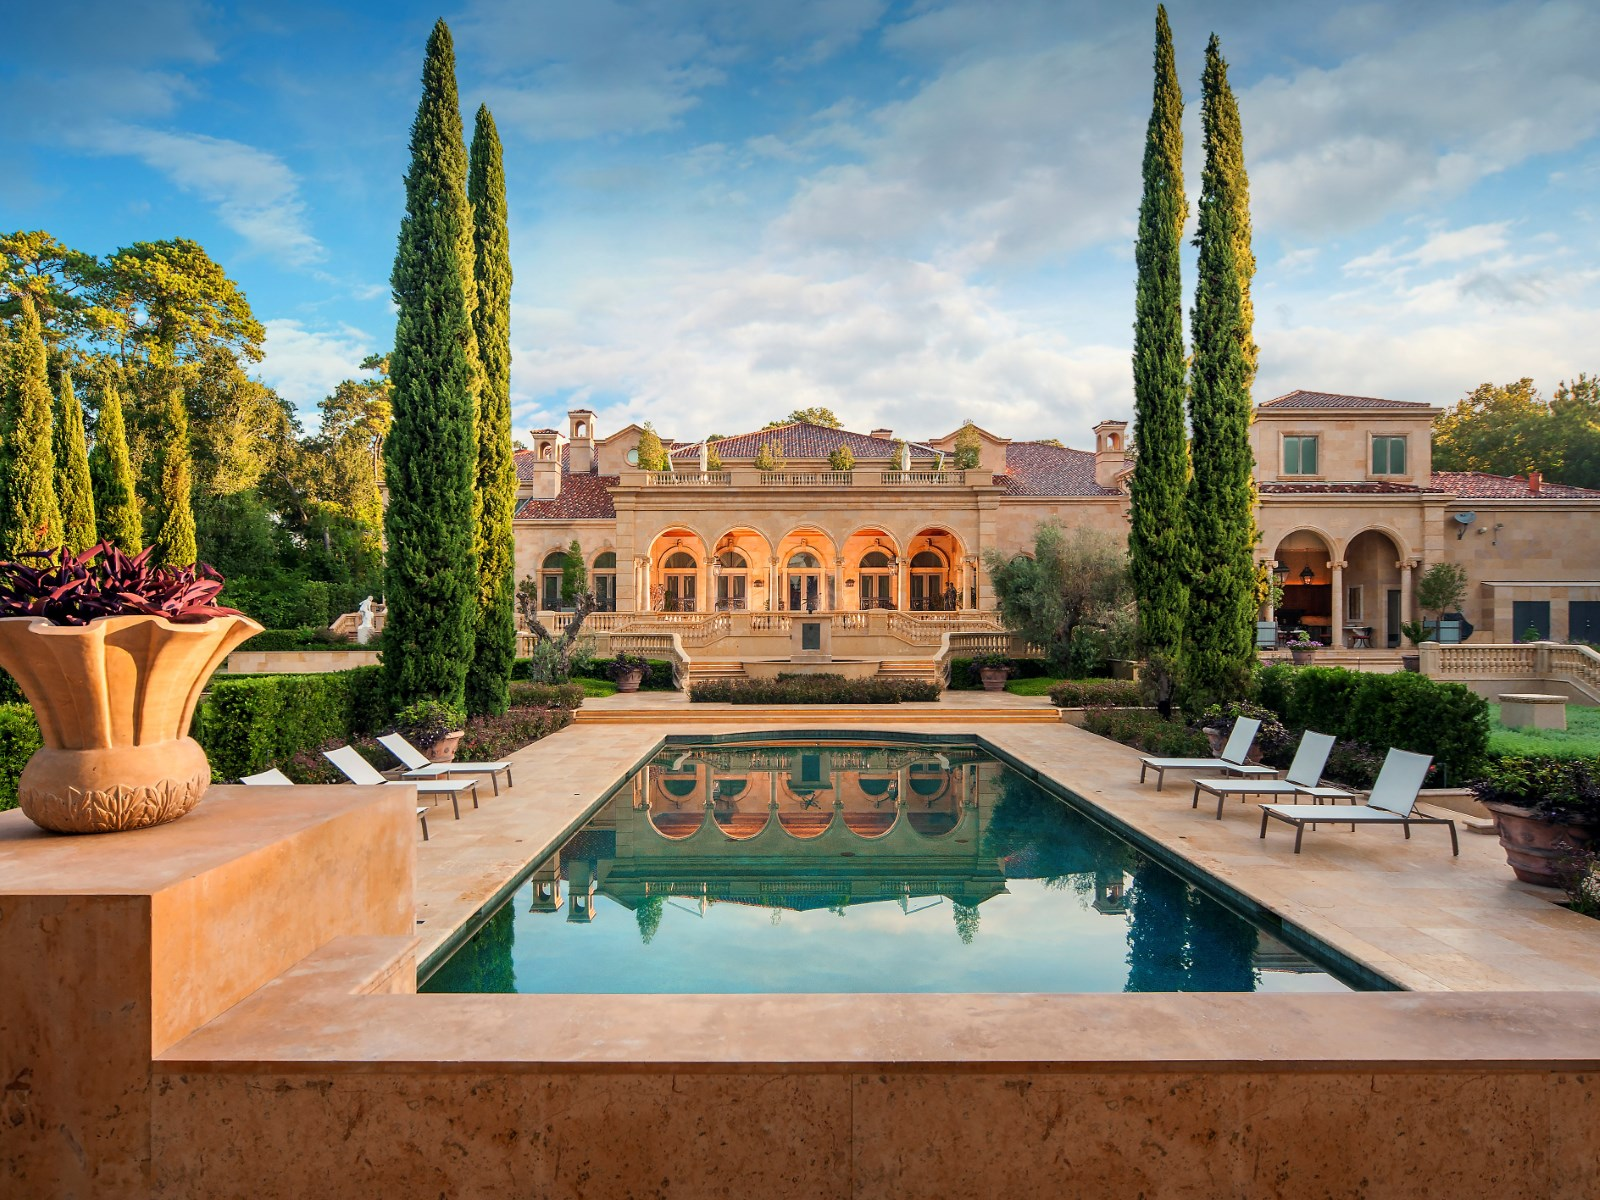 This $43 Million Texas Palace is Unbelievably Huge and Luxurious